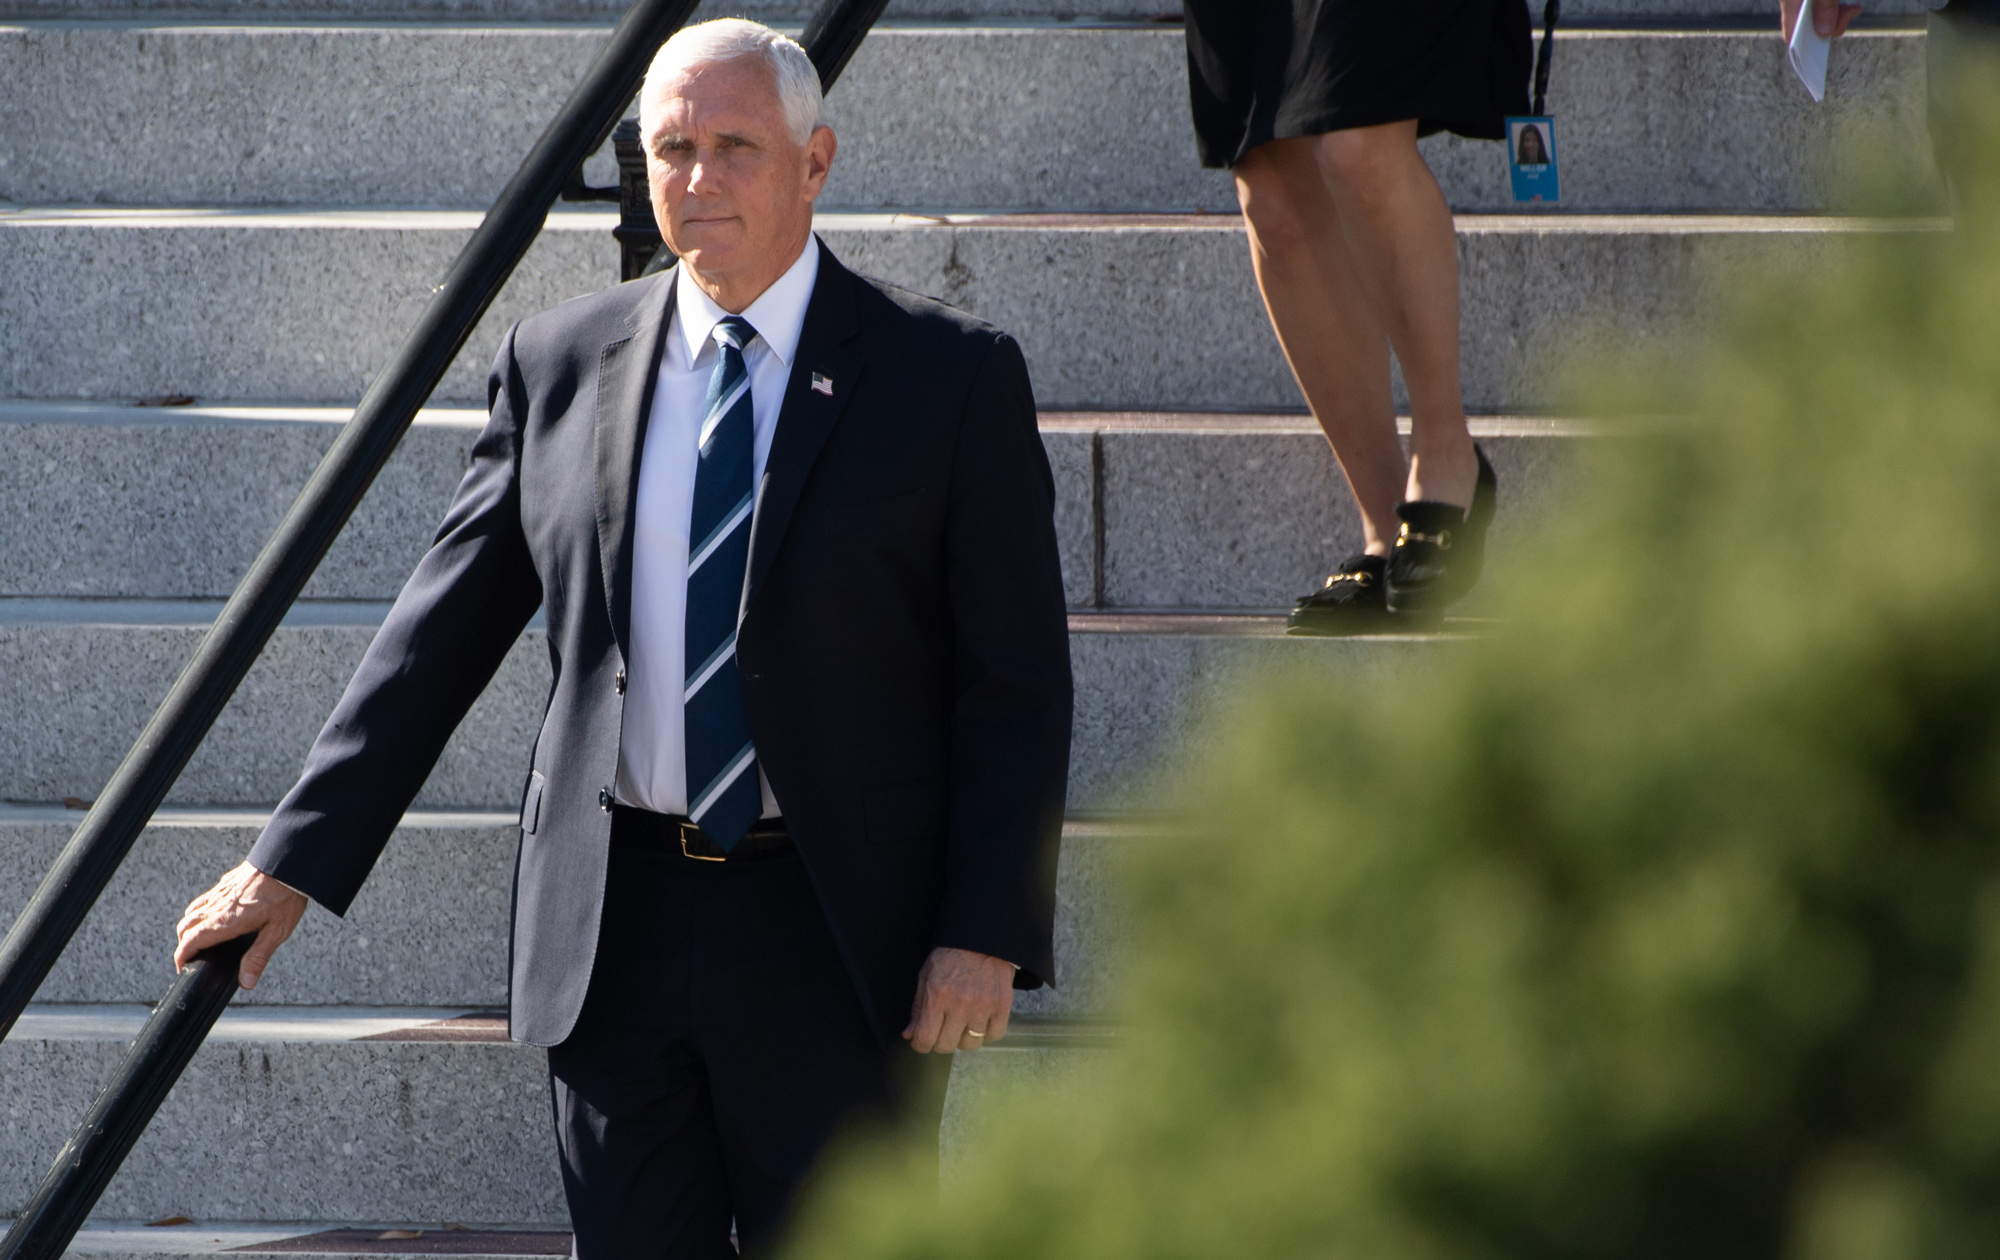 Vice President Mike Pence leaves the Eisenhower Executive Office Building in Washington, DC, on November 9.